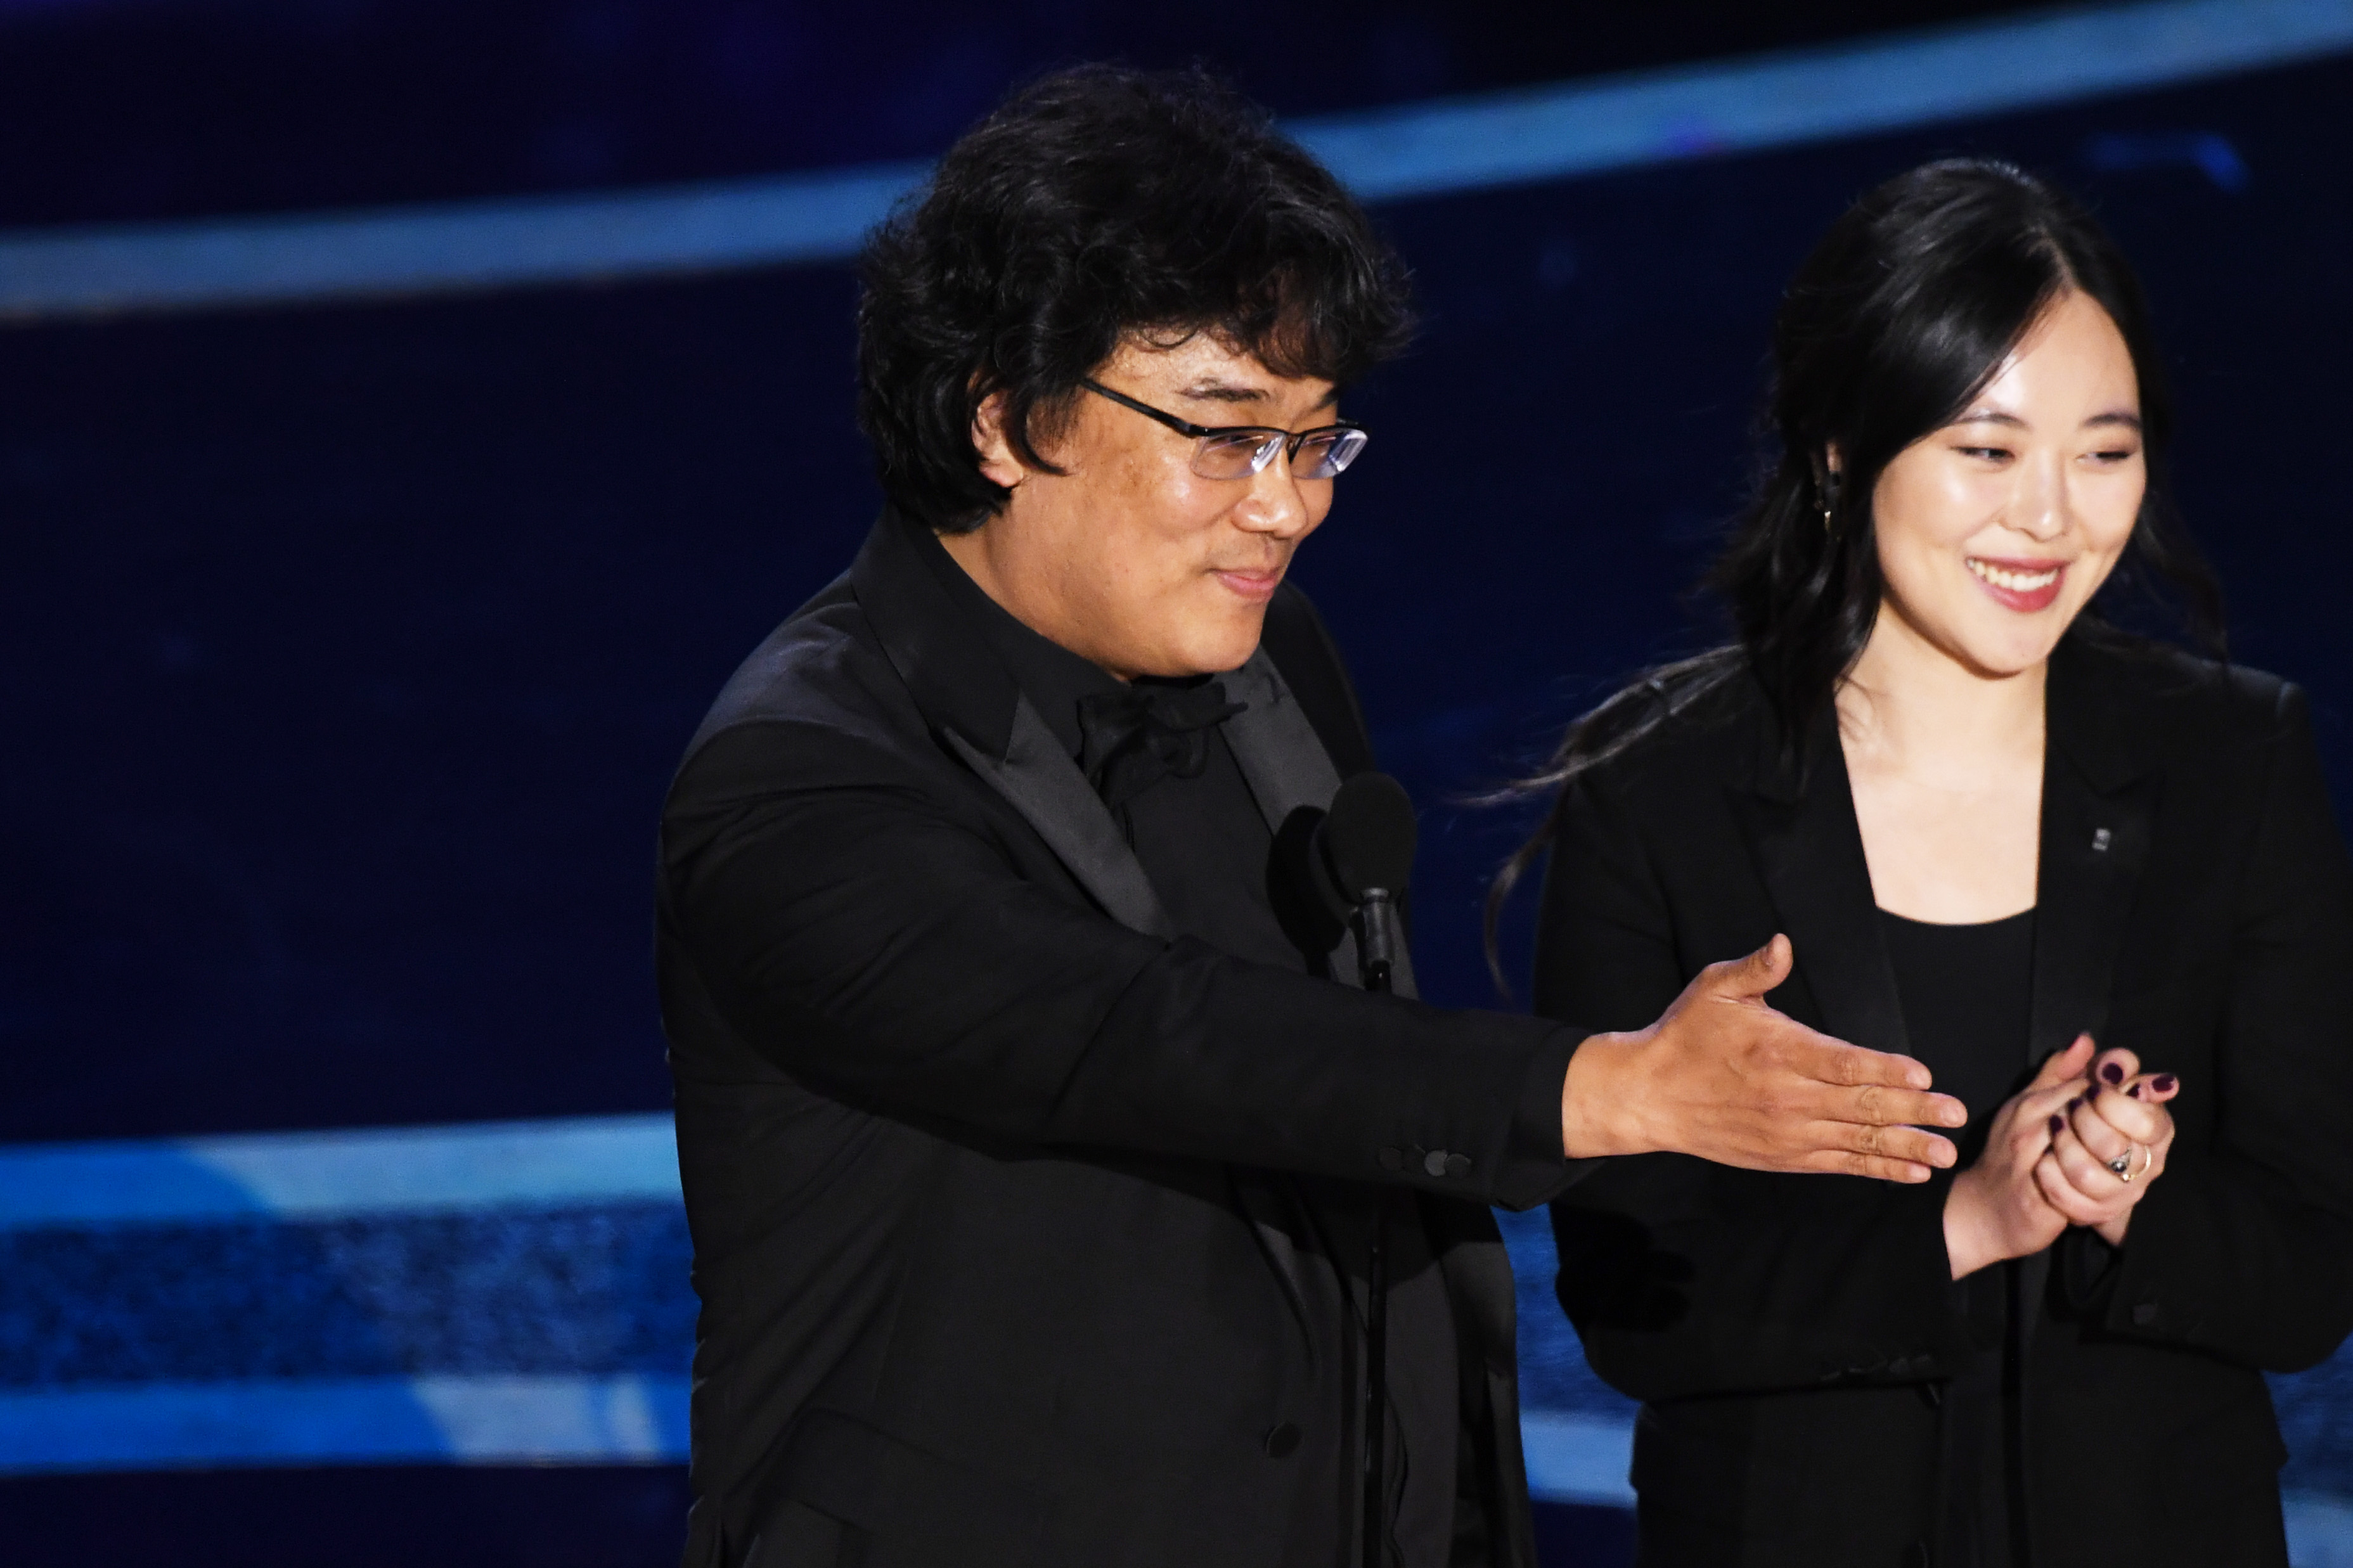 HOLLYWOOD, CALIFORNIA - FEBRUARY 09: Bong Joon-ho accepts the Directing award for 'Parasite' with interpreter Sharon Choi onstage during the 92nd Annual Academy Awards at Dolby Theatre on February 09, 2020 in Hollywood, California. (Photo by Kevin Winter/Getty Images)